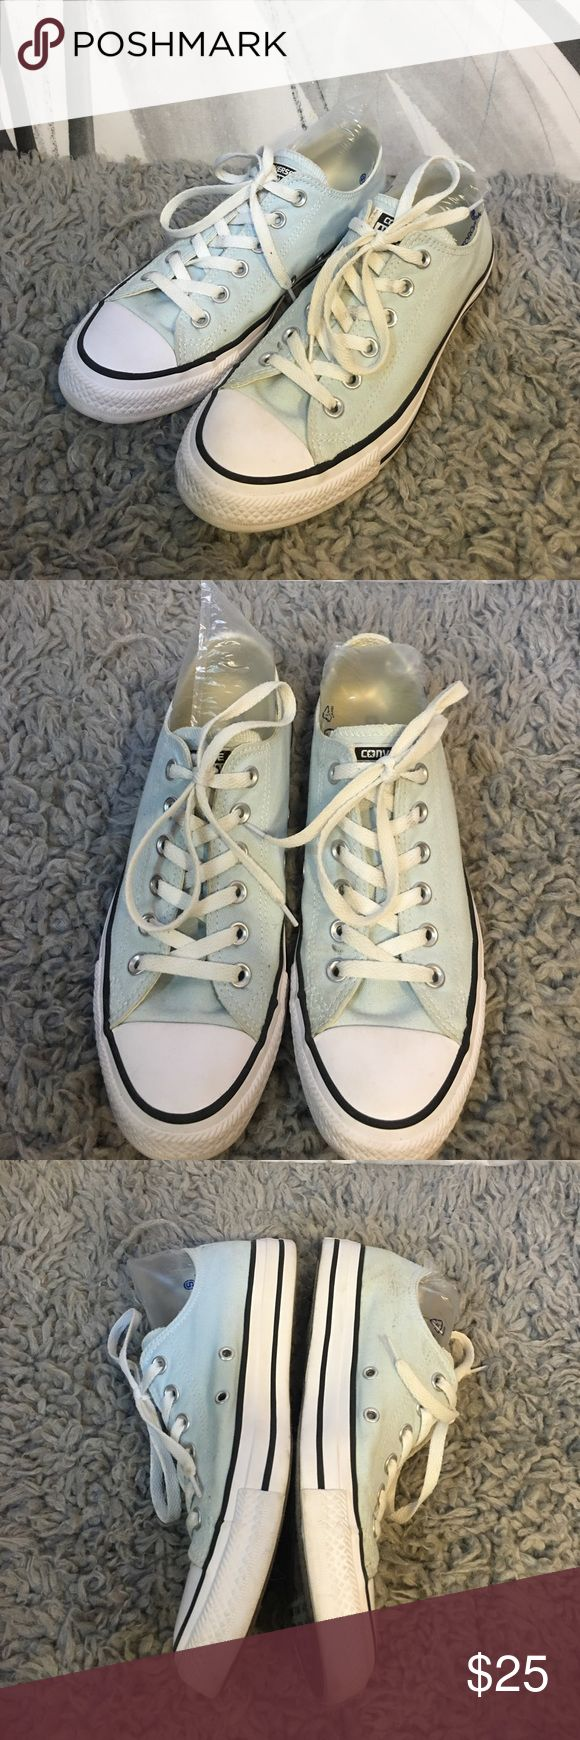 Mint green Converse low tops Mint Chuck Taylor converse low tops in good condition with wear on soles and marks on fabric as seen in pictures. Size 9 women's, 7 men's Converse Shoes